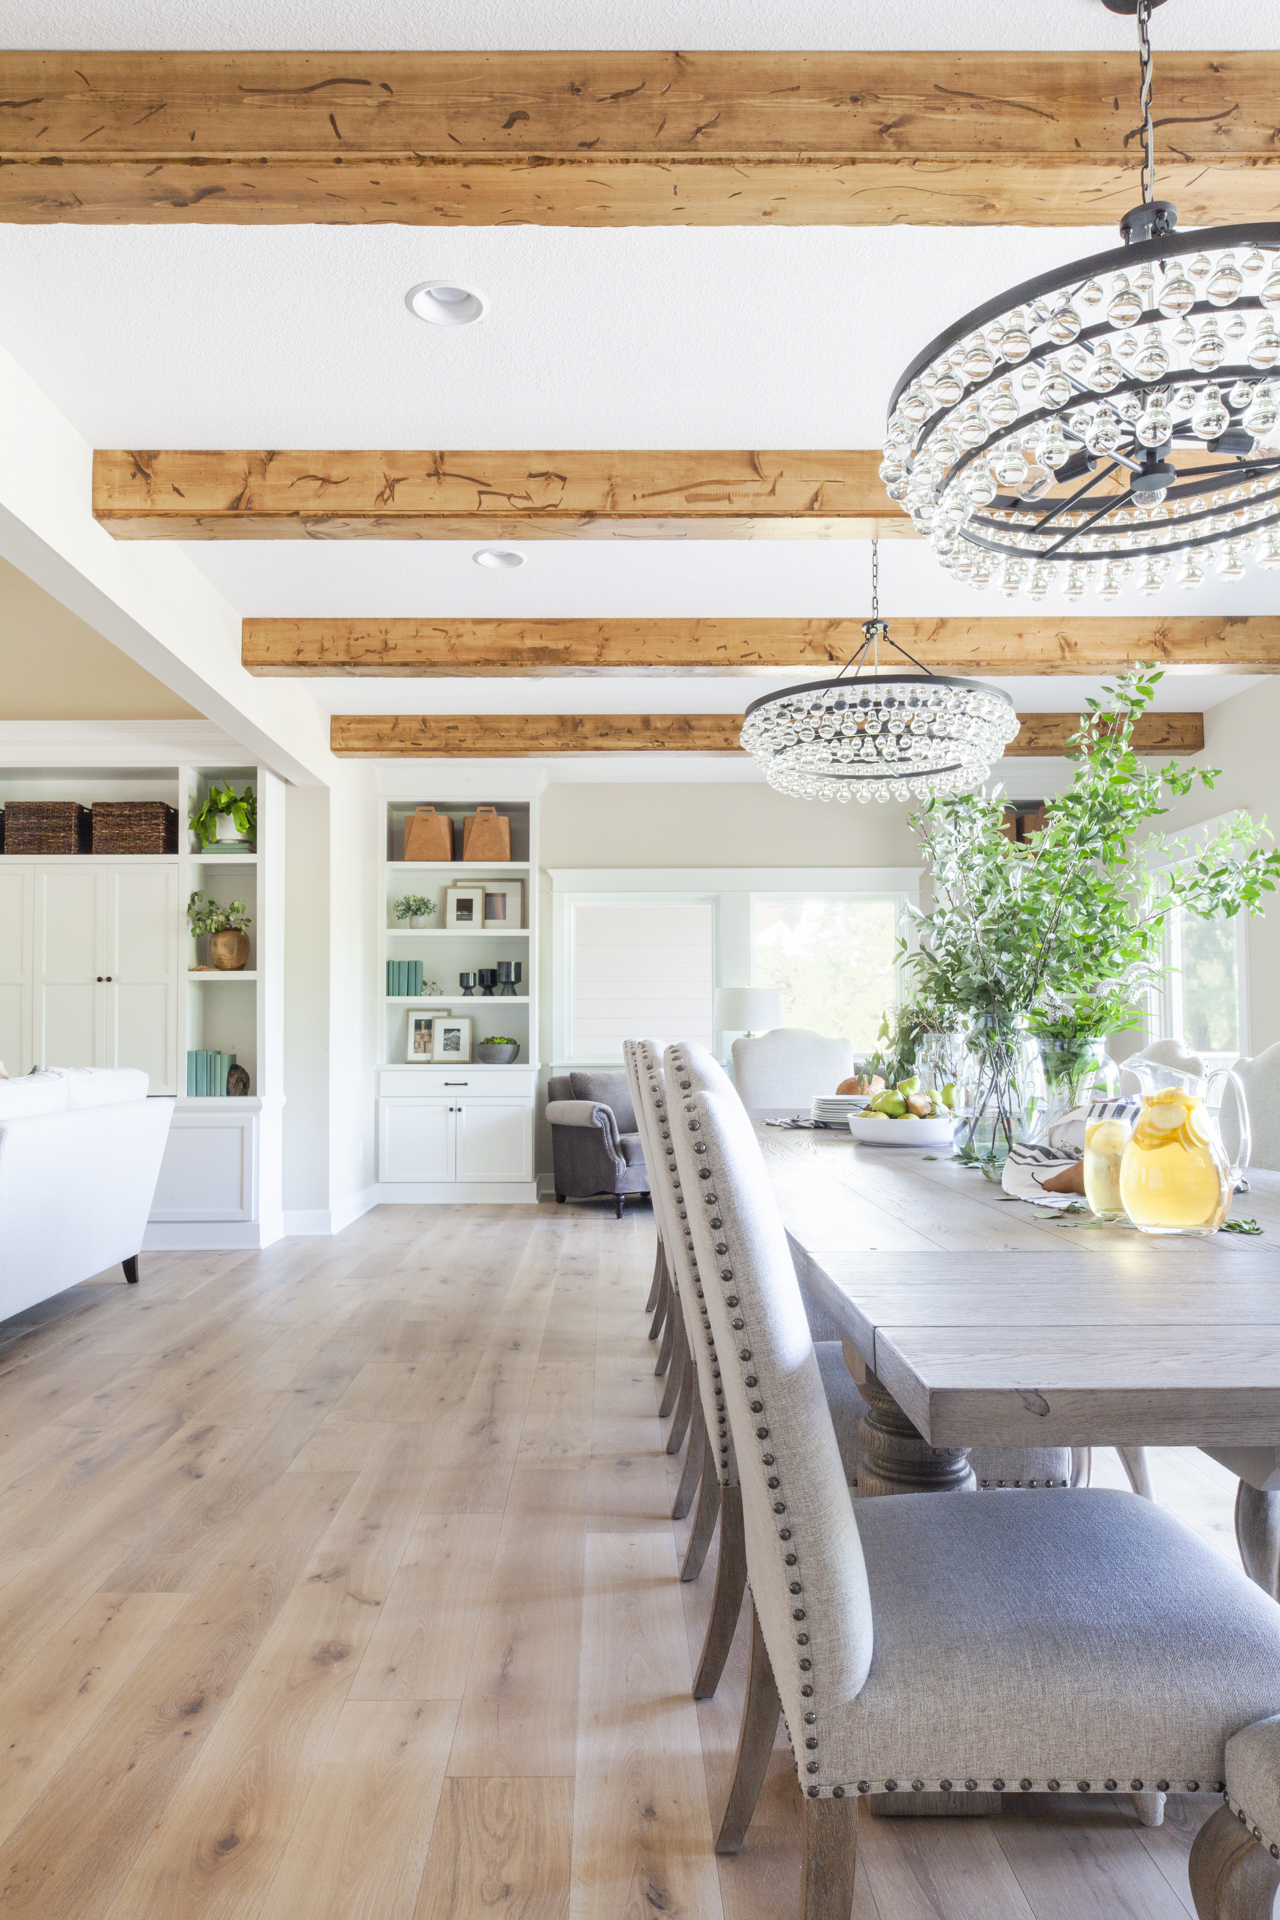 before-and-after-home-reveal-scout-and-nimble-lake-view-luxe-country-interior-design-dining-room-open-floor-plan-glass-chandelier-crypton-fabric-built-in-shelves-food-styling-99.jpg